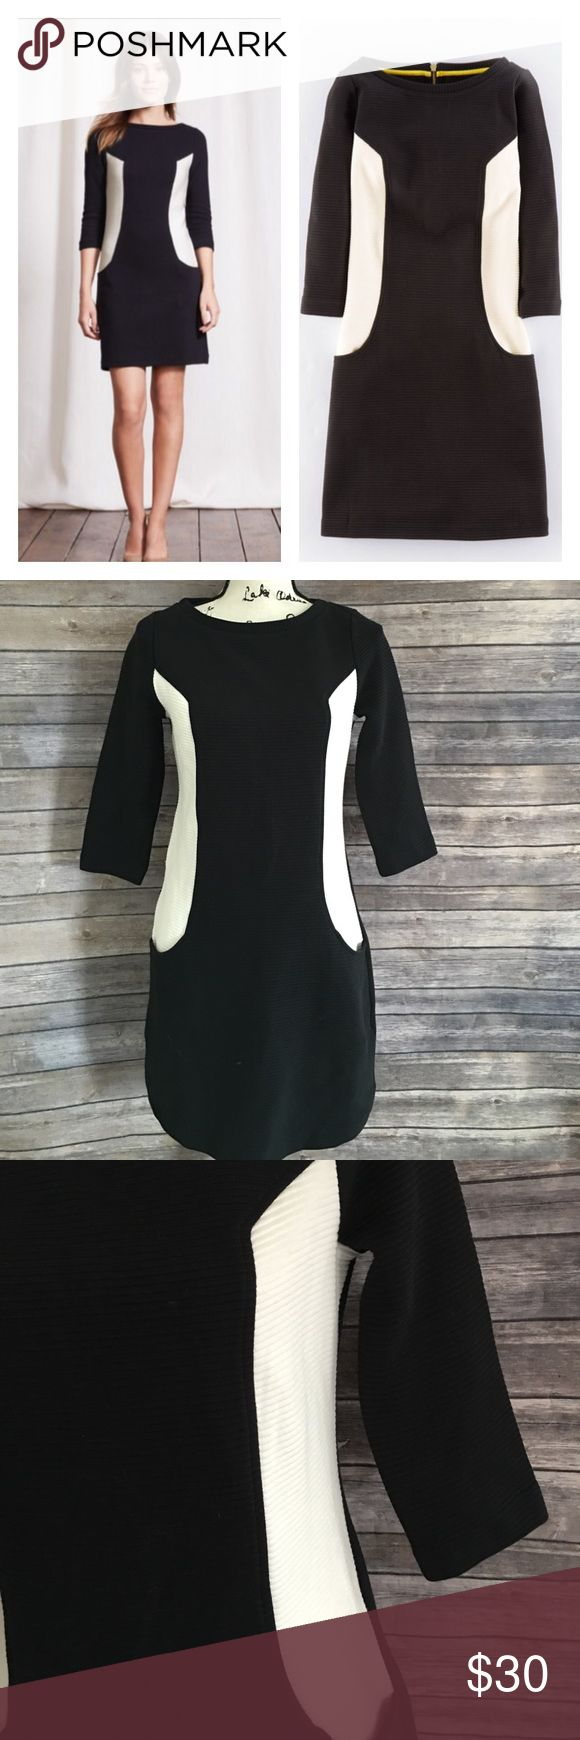 """Boden ottoman shift dress black/white Great pre loved condition. No holes or stains. Channel the Sixties with our textured Ponte shift. We've refined the fit this season so it's even more flattering. 100% cotton Length finishes at low thigh Machine washable Semi fitted shape ¾ length sleeves Textured medium weight jersey Unlined Zip detail at back Front pockets.  Measurements flat lay: bust 36"""", length 34"""". Boden Dresses Mini"""